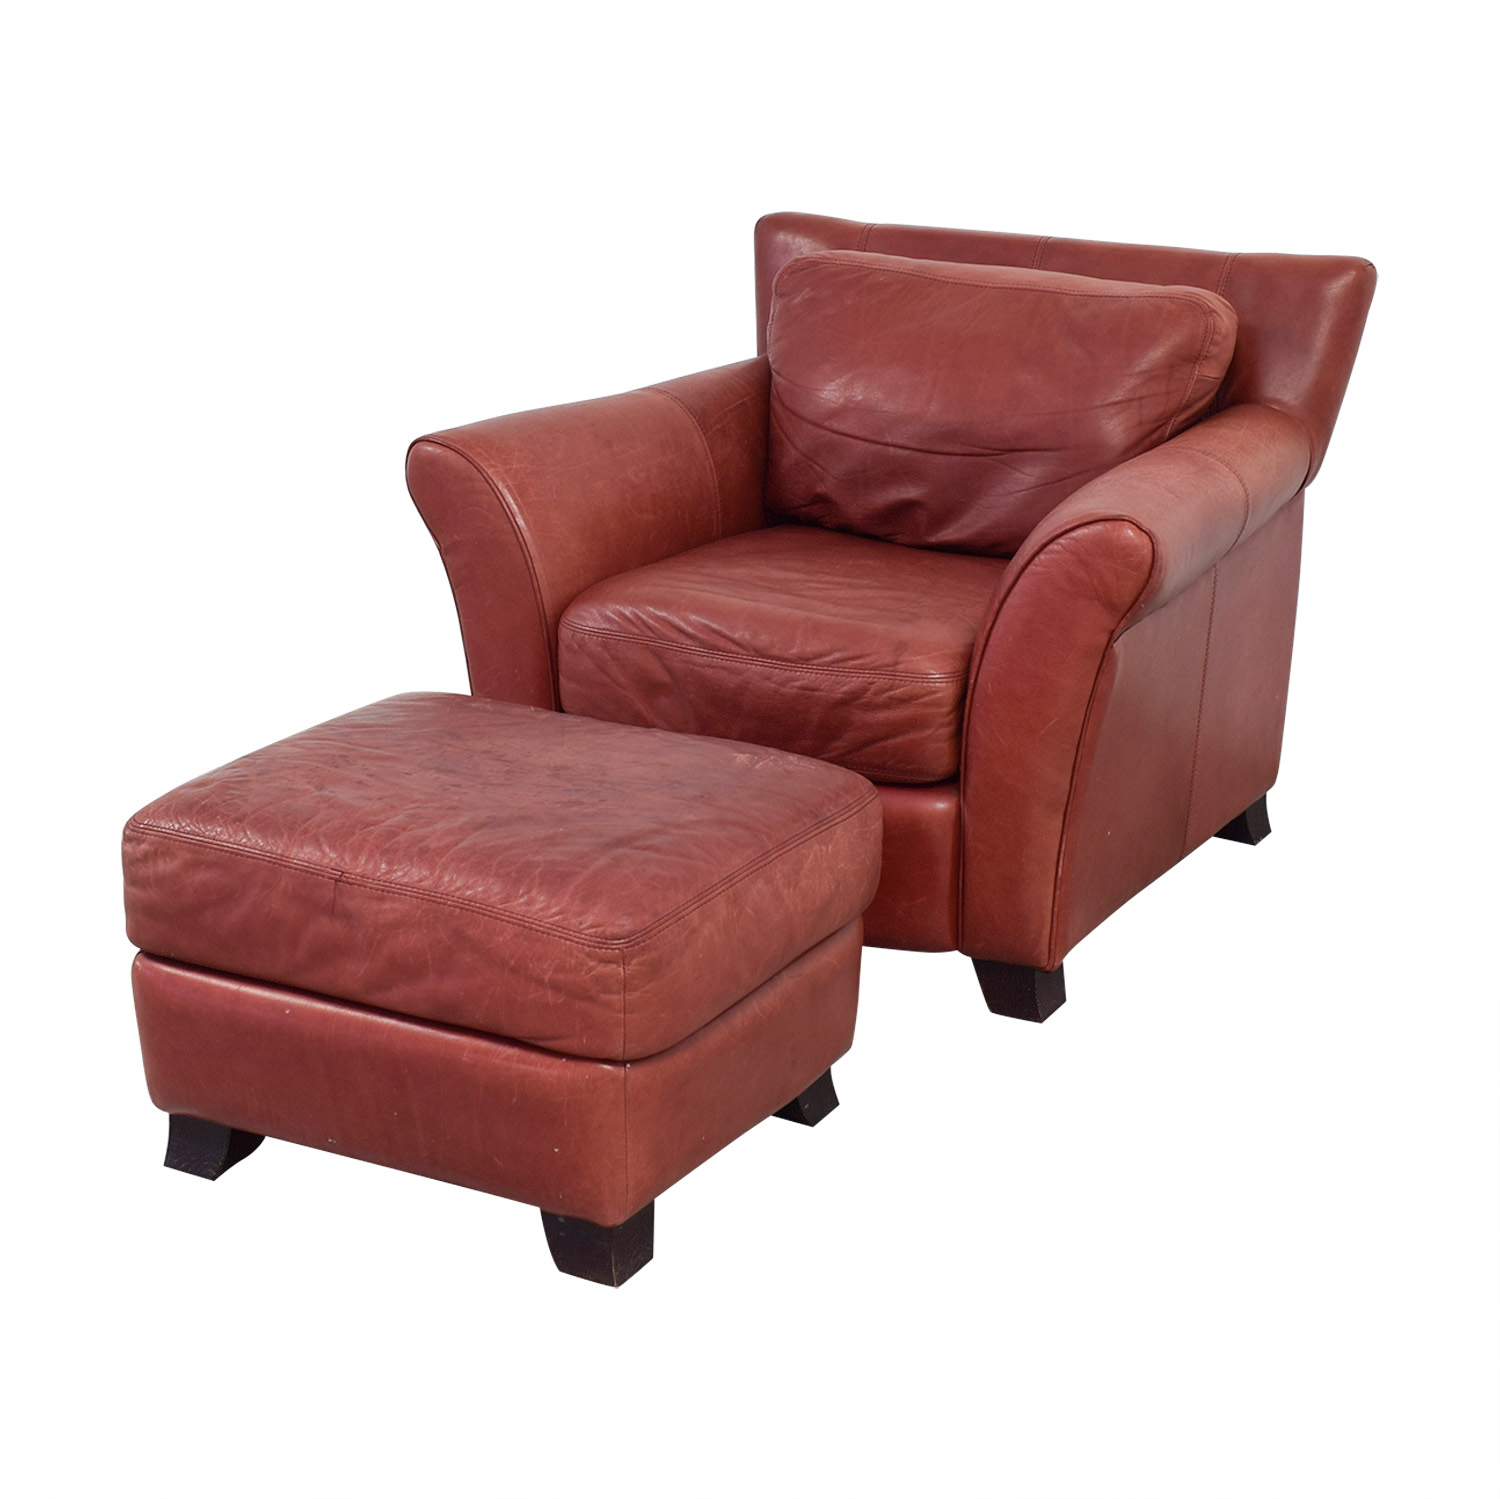 red leather chair and ottoman walmart folding 73 off palliser